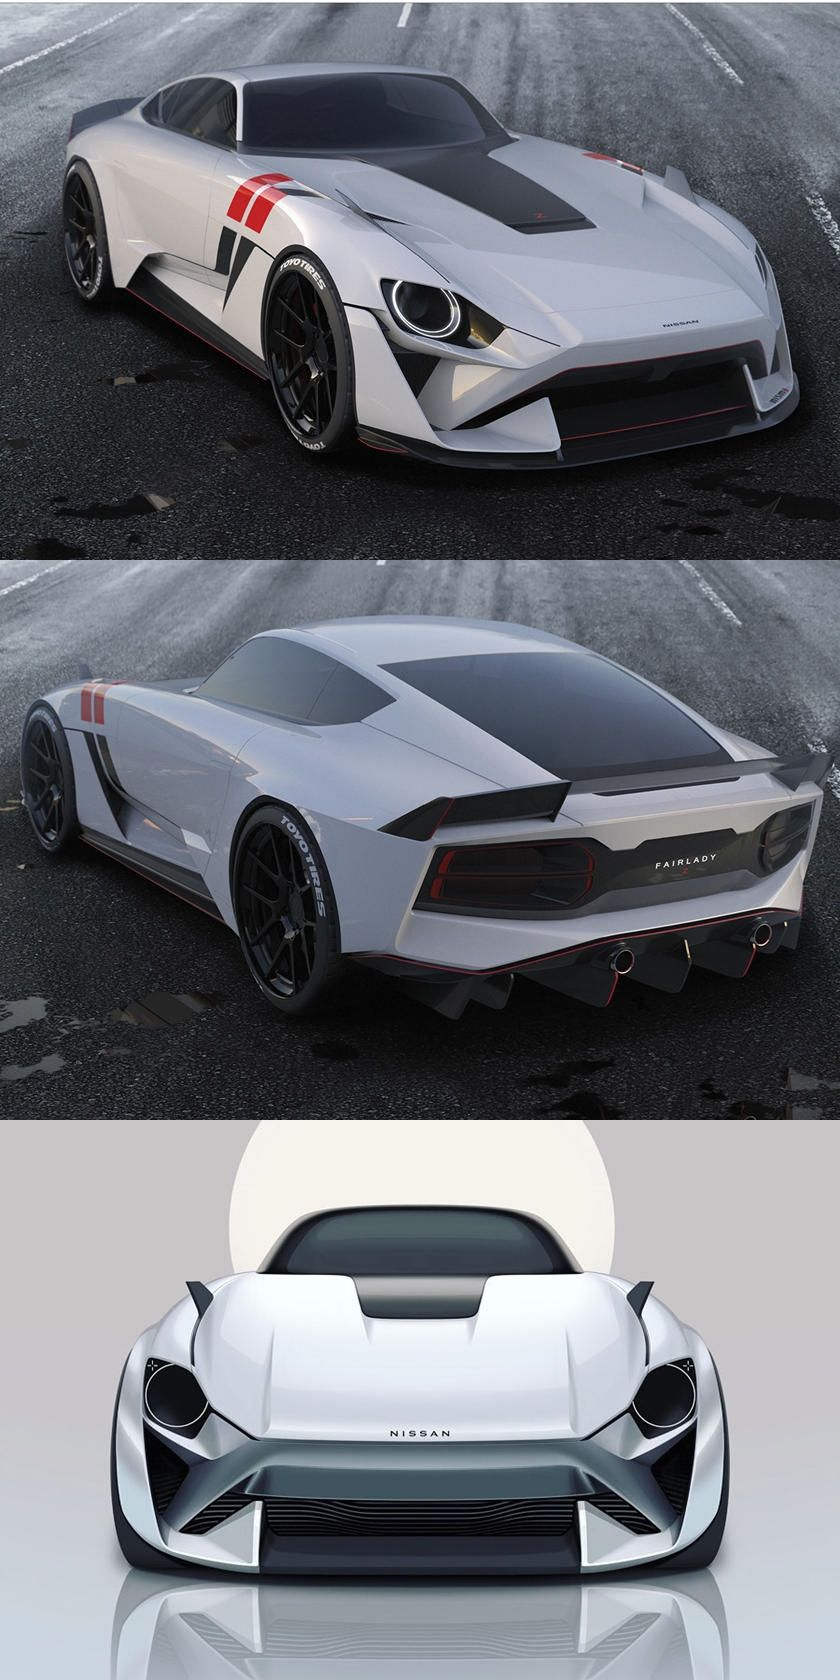 Nissan 400z Will Be Much Cheaper Than Toyota Gr Supra Looks Like The New Nissan Z Car Will Give The Supra A Run For In 2020 Nissan Z Cars Nissan